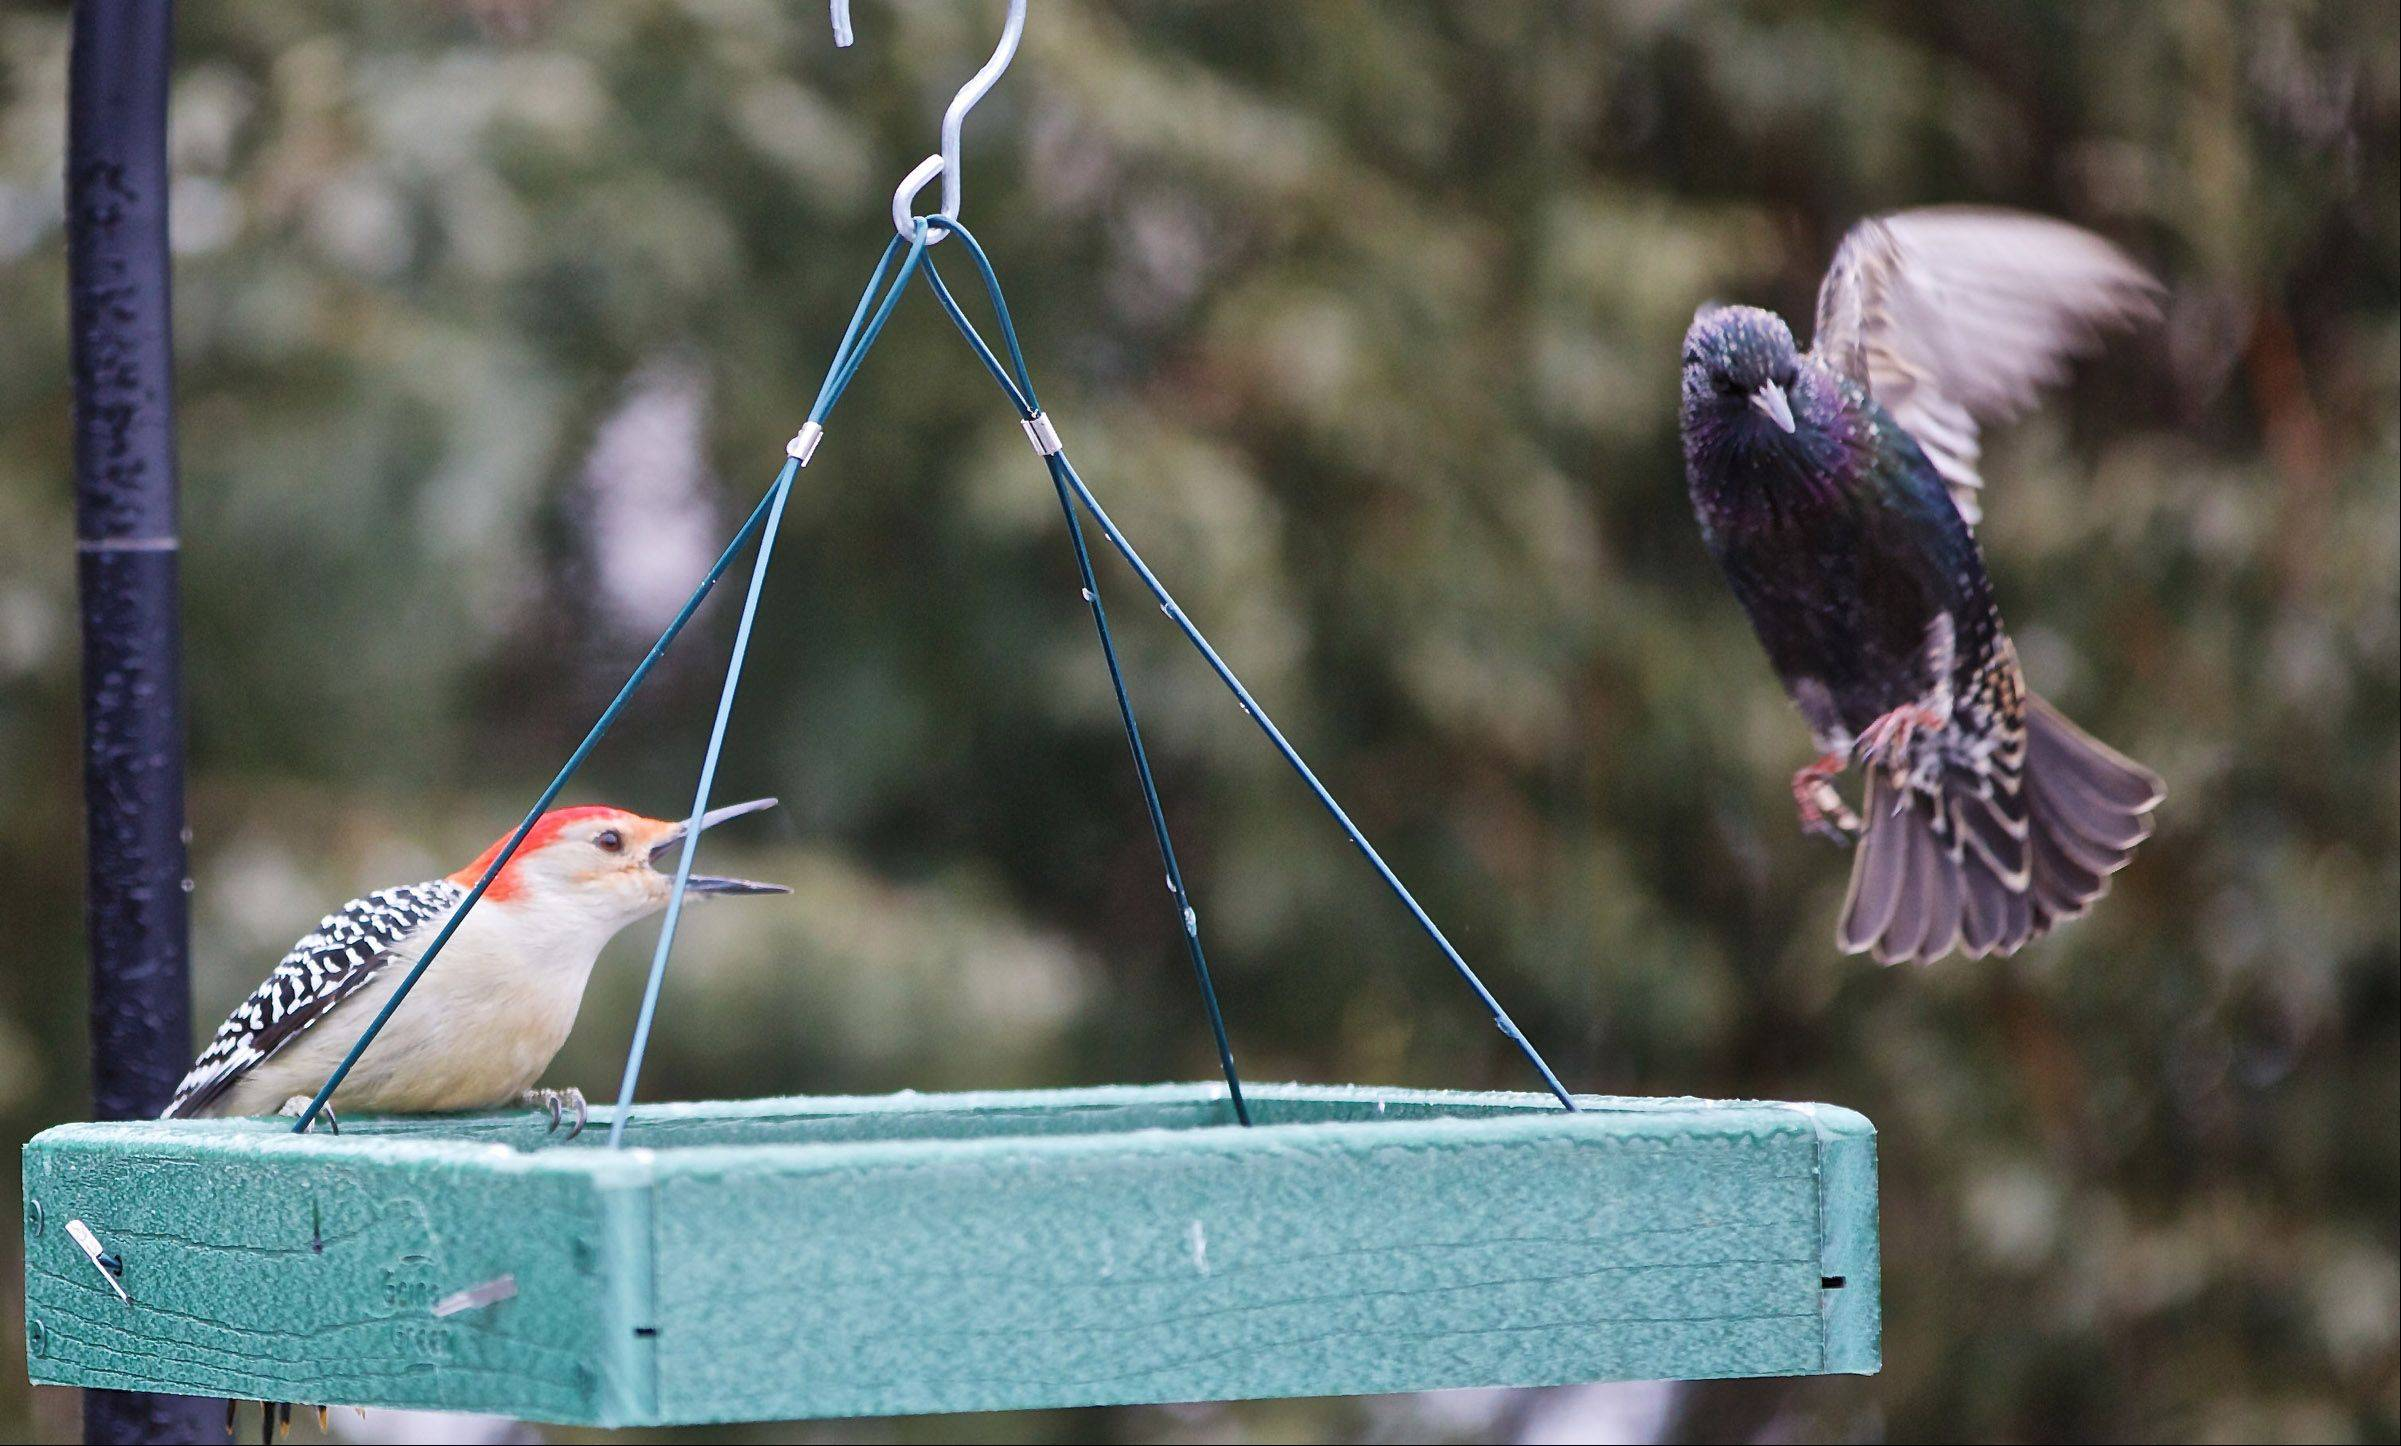 A Red Bellied Woodpecker and a Starling on the feeder in an Ingleside backyard last month.